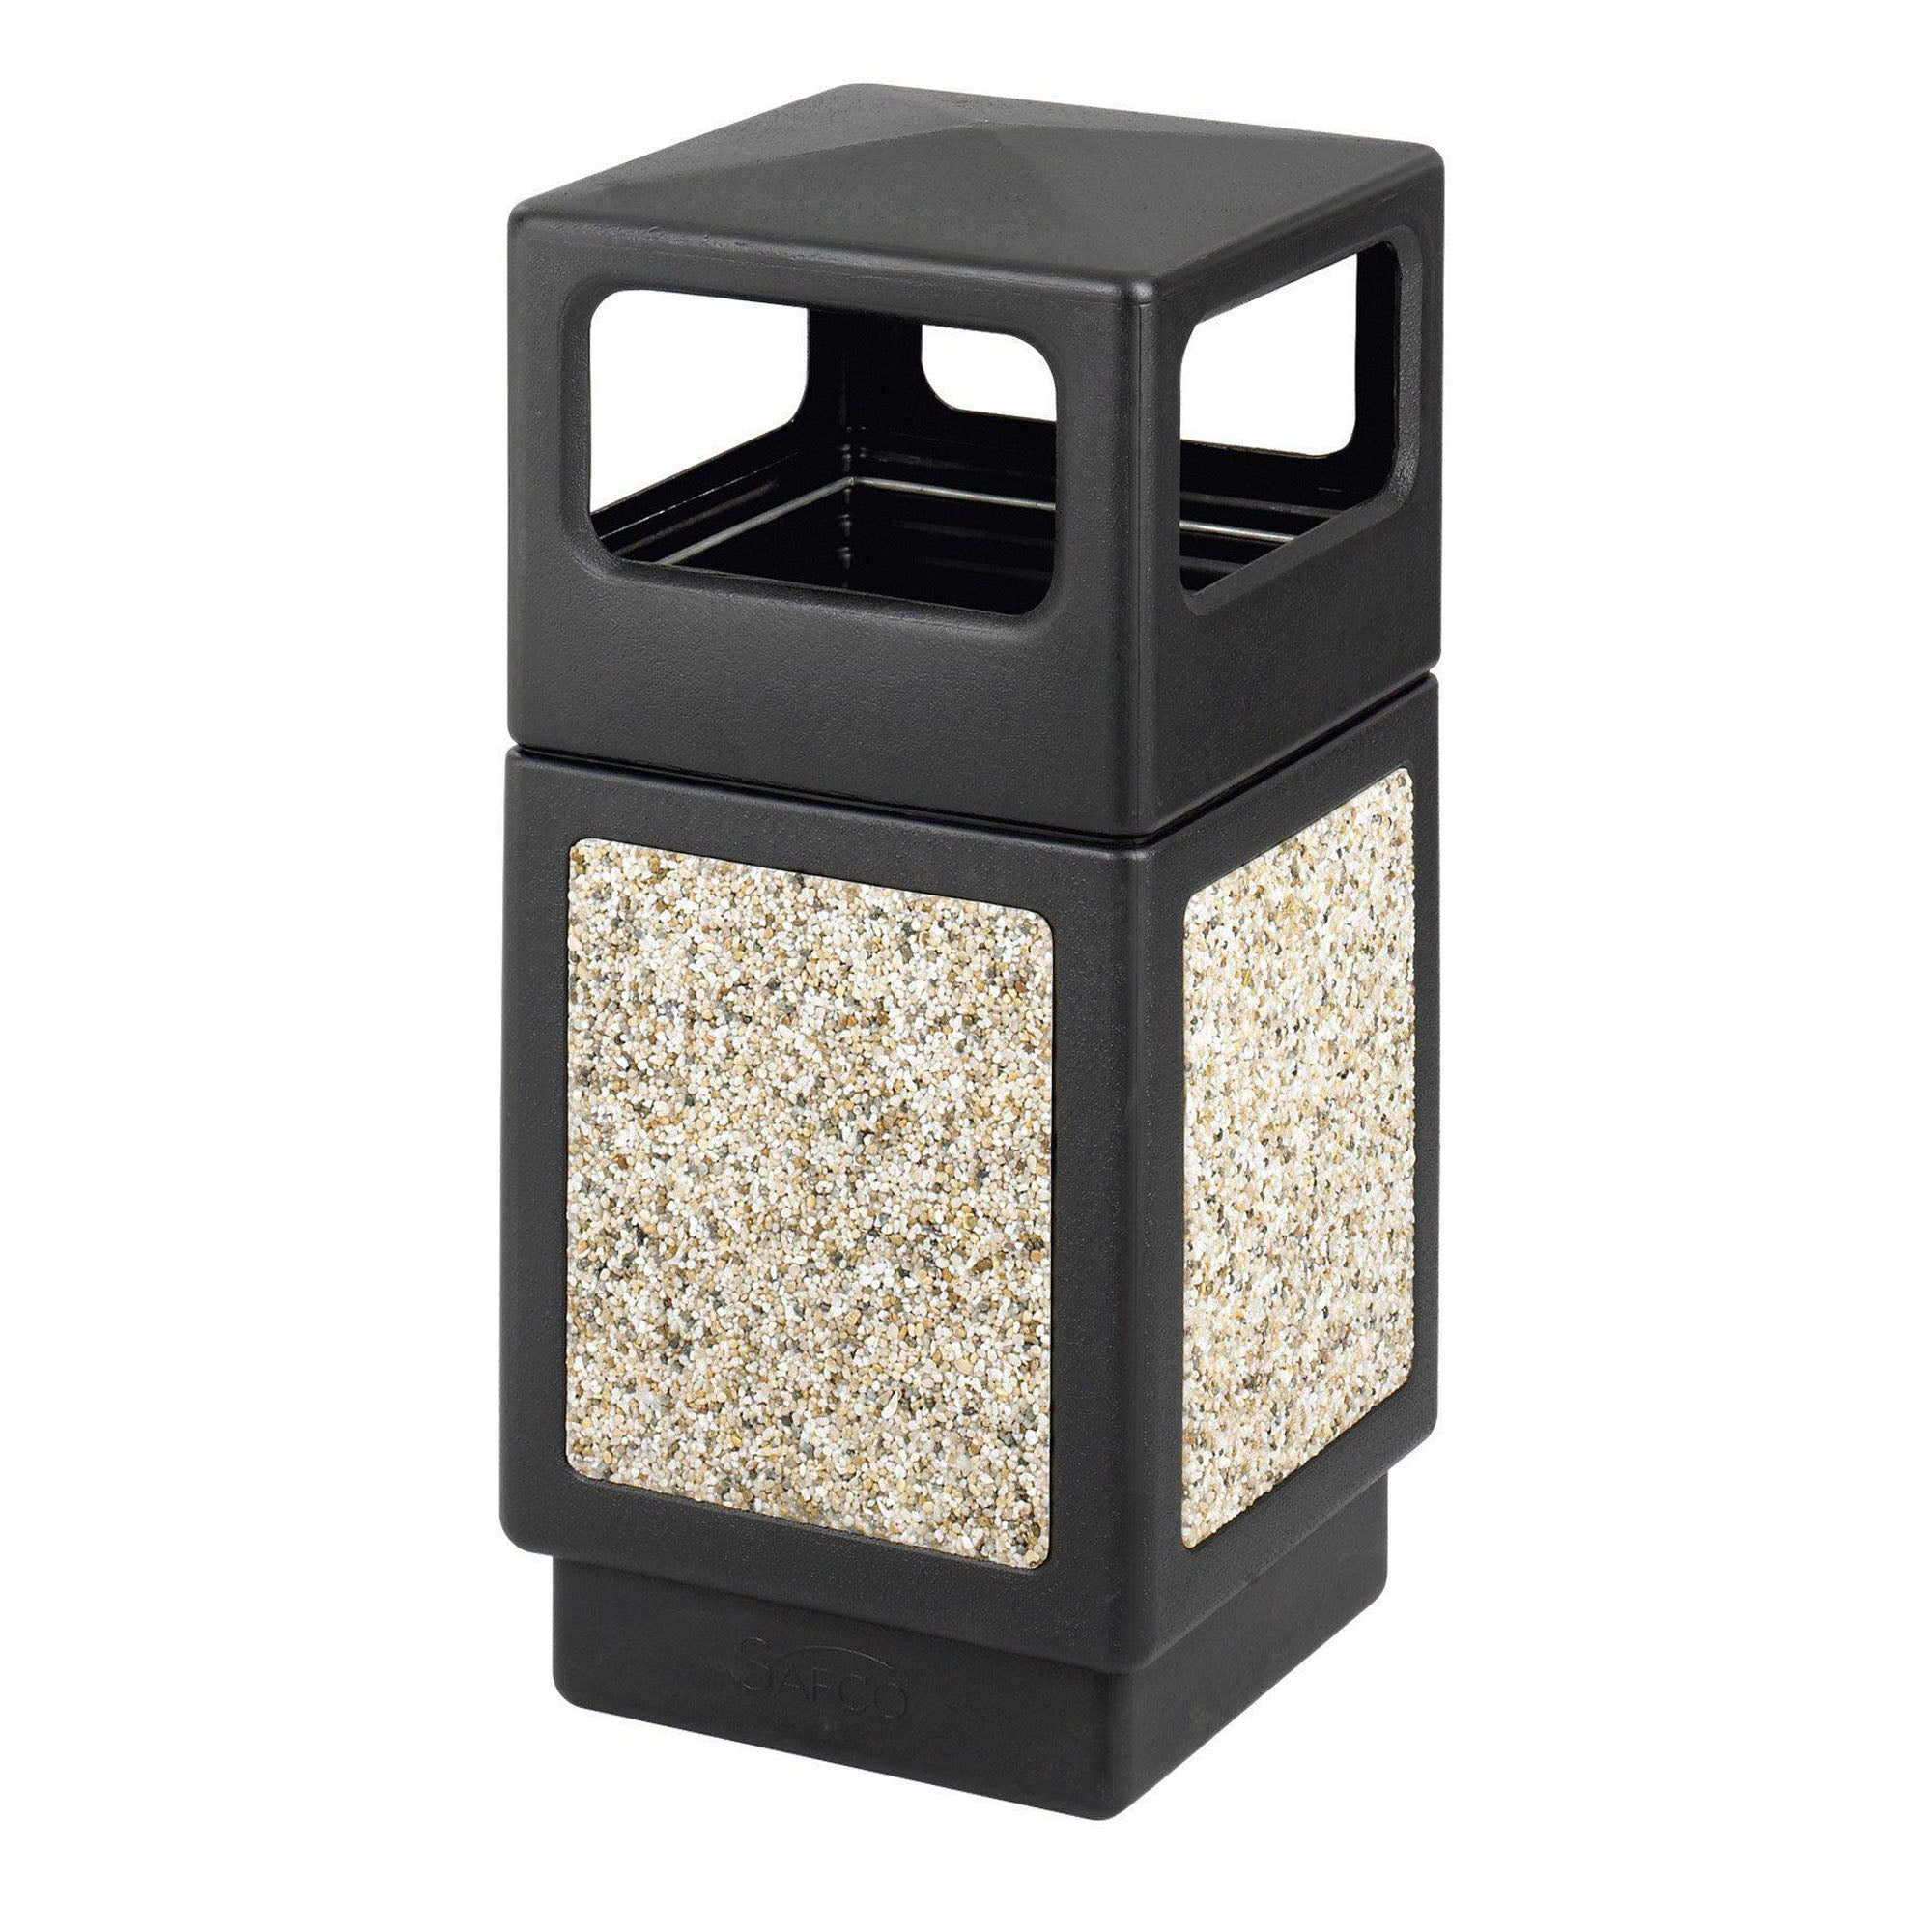 Waste & Recycling Receptacles